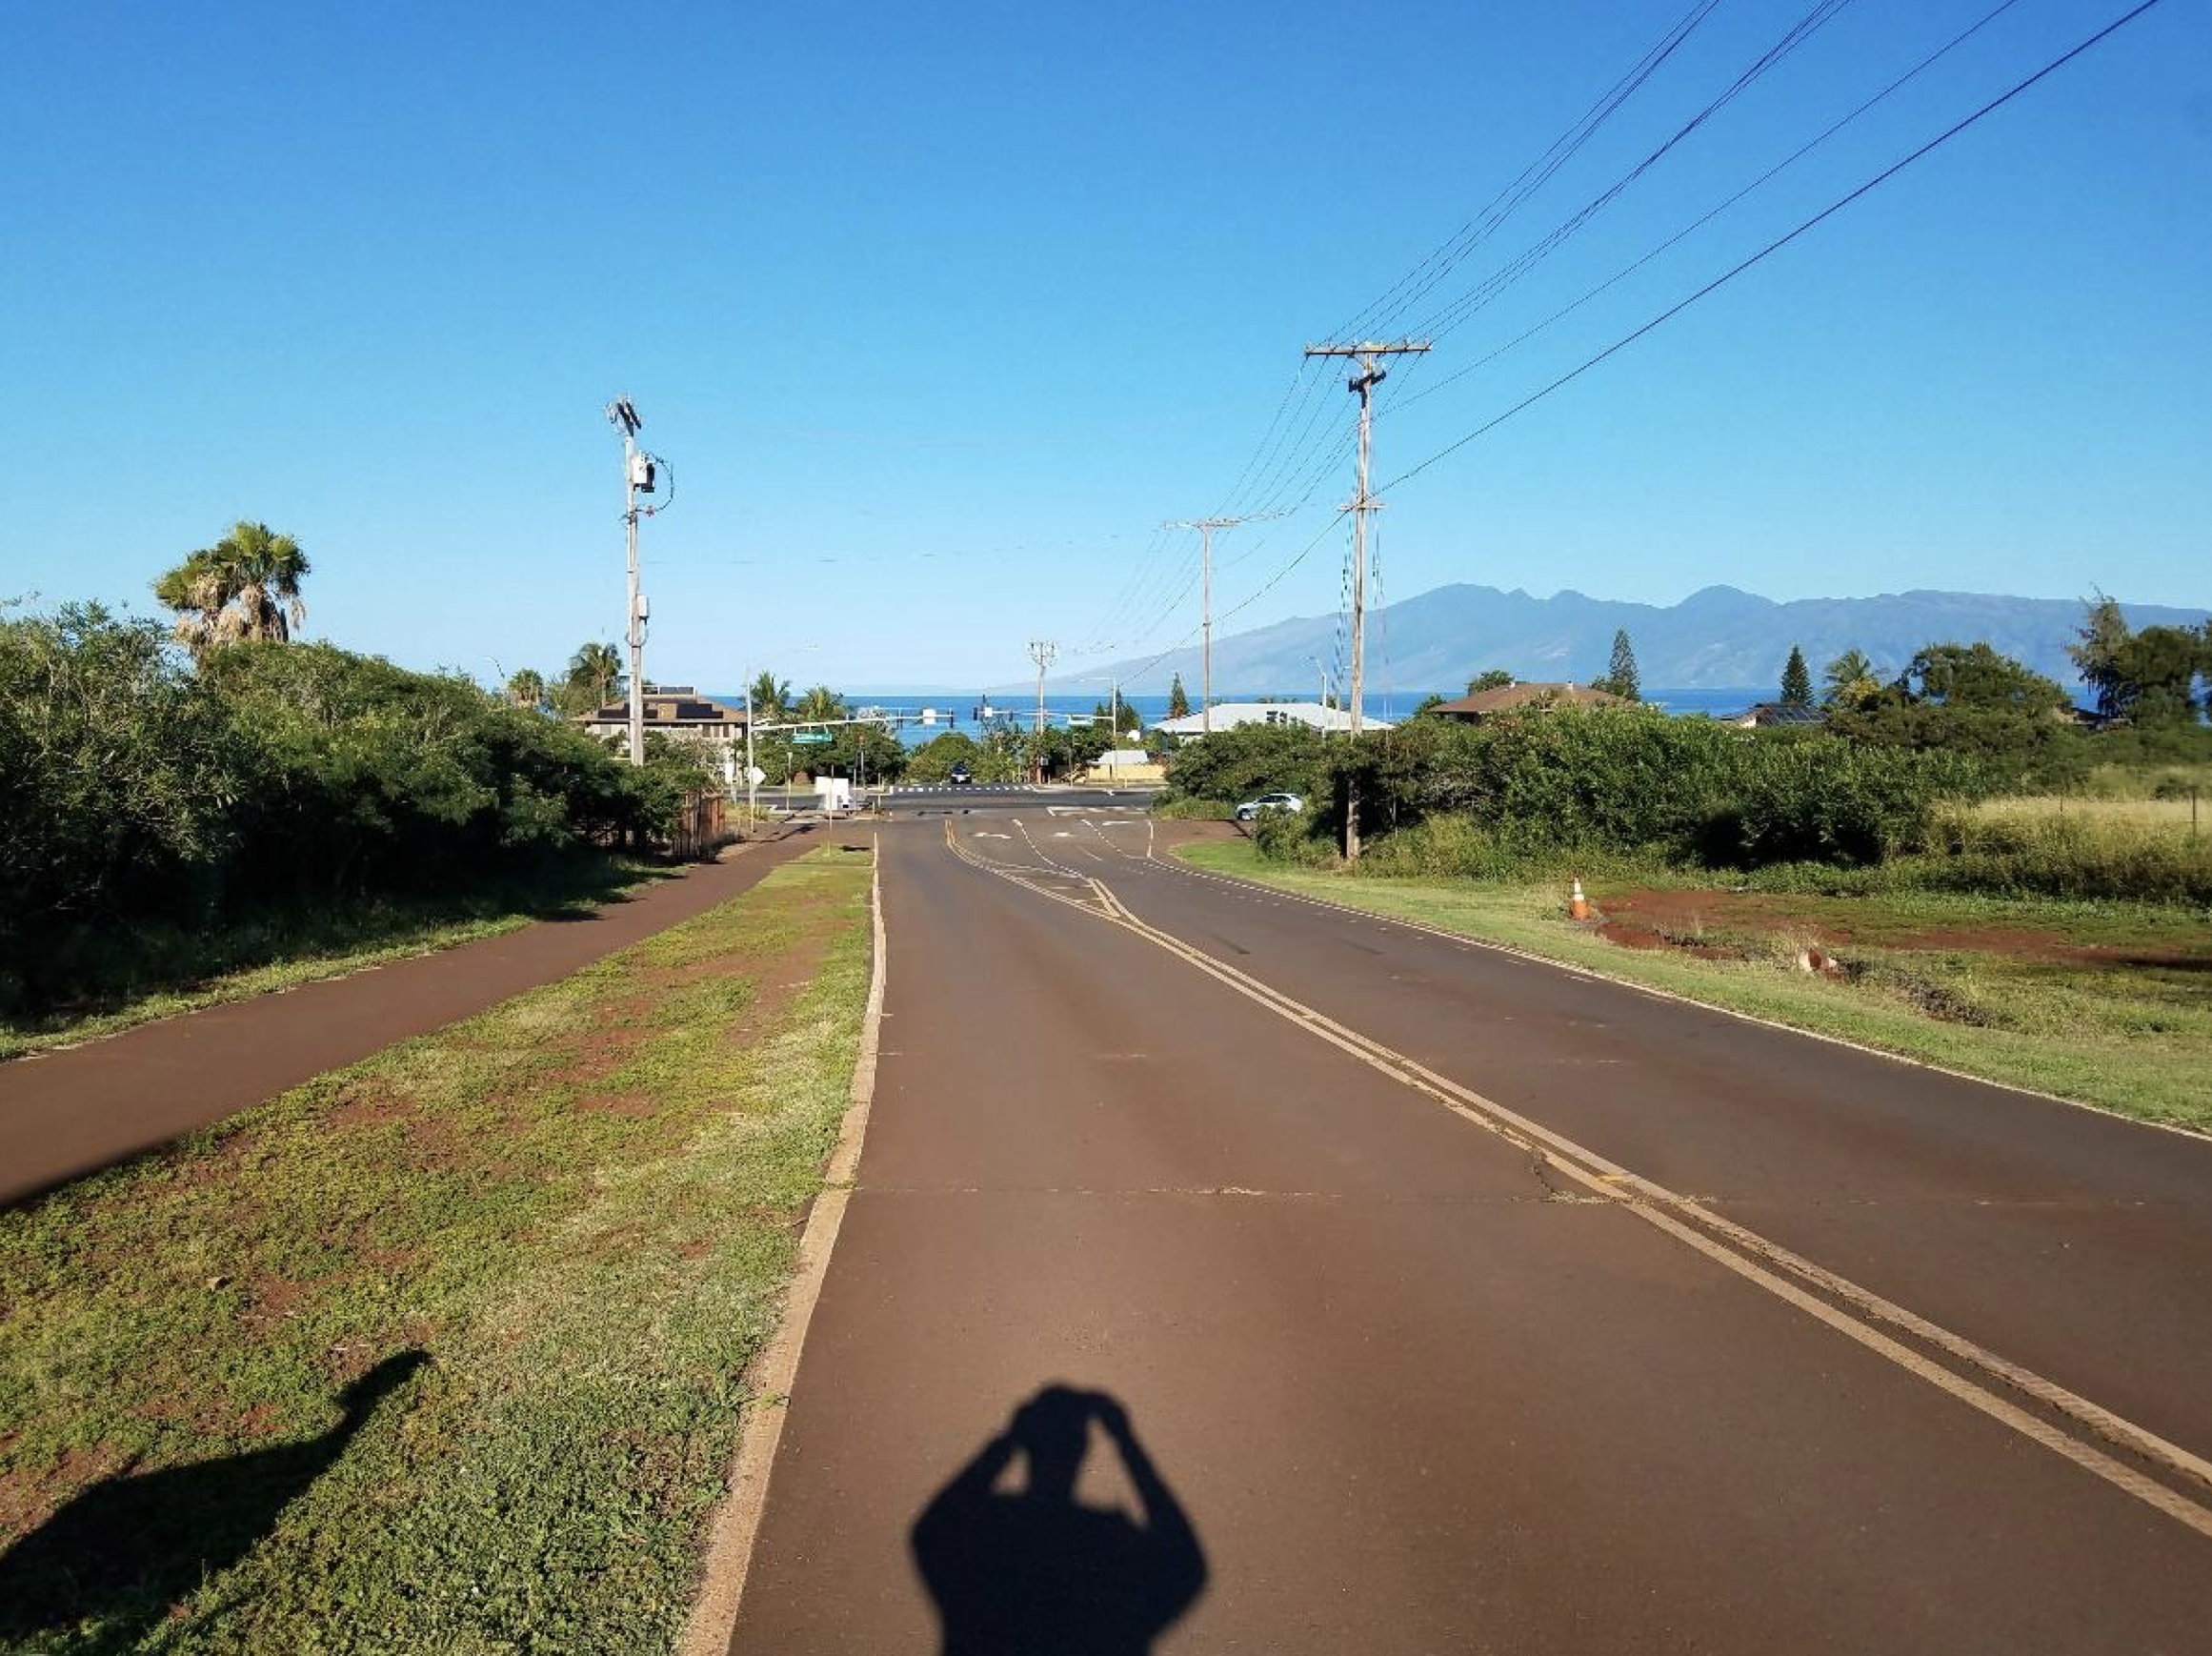 Maui Projects Pending Planning Commission Review Now Available for Viewing Online